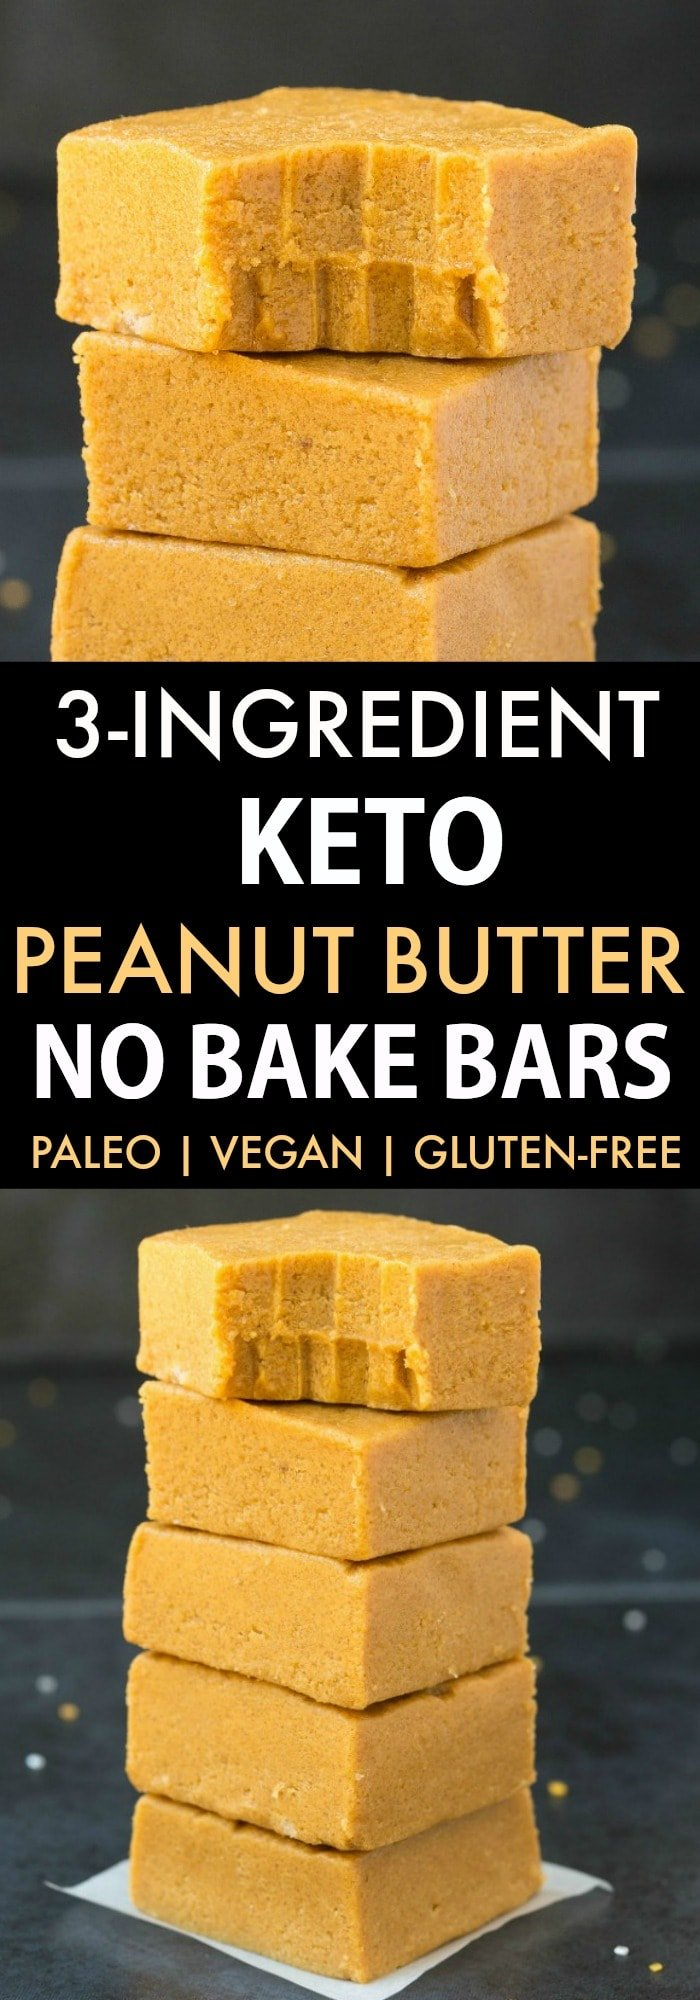 A collage of 3-ingredient keto peanut butter bars stacked on top of one another.